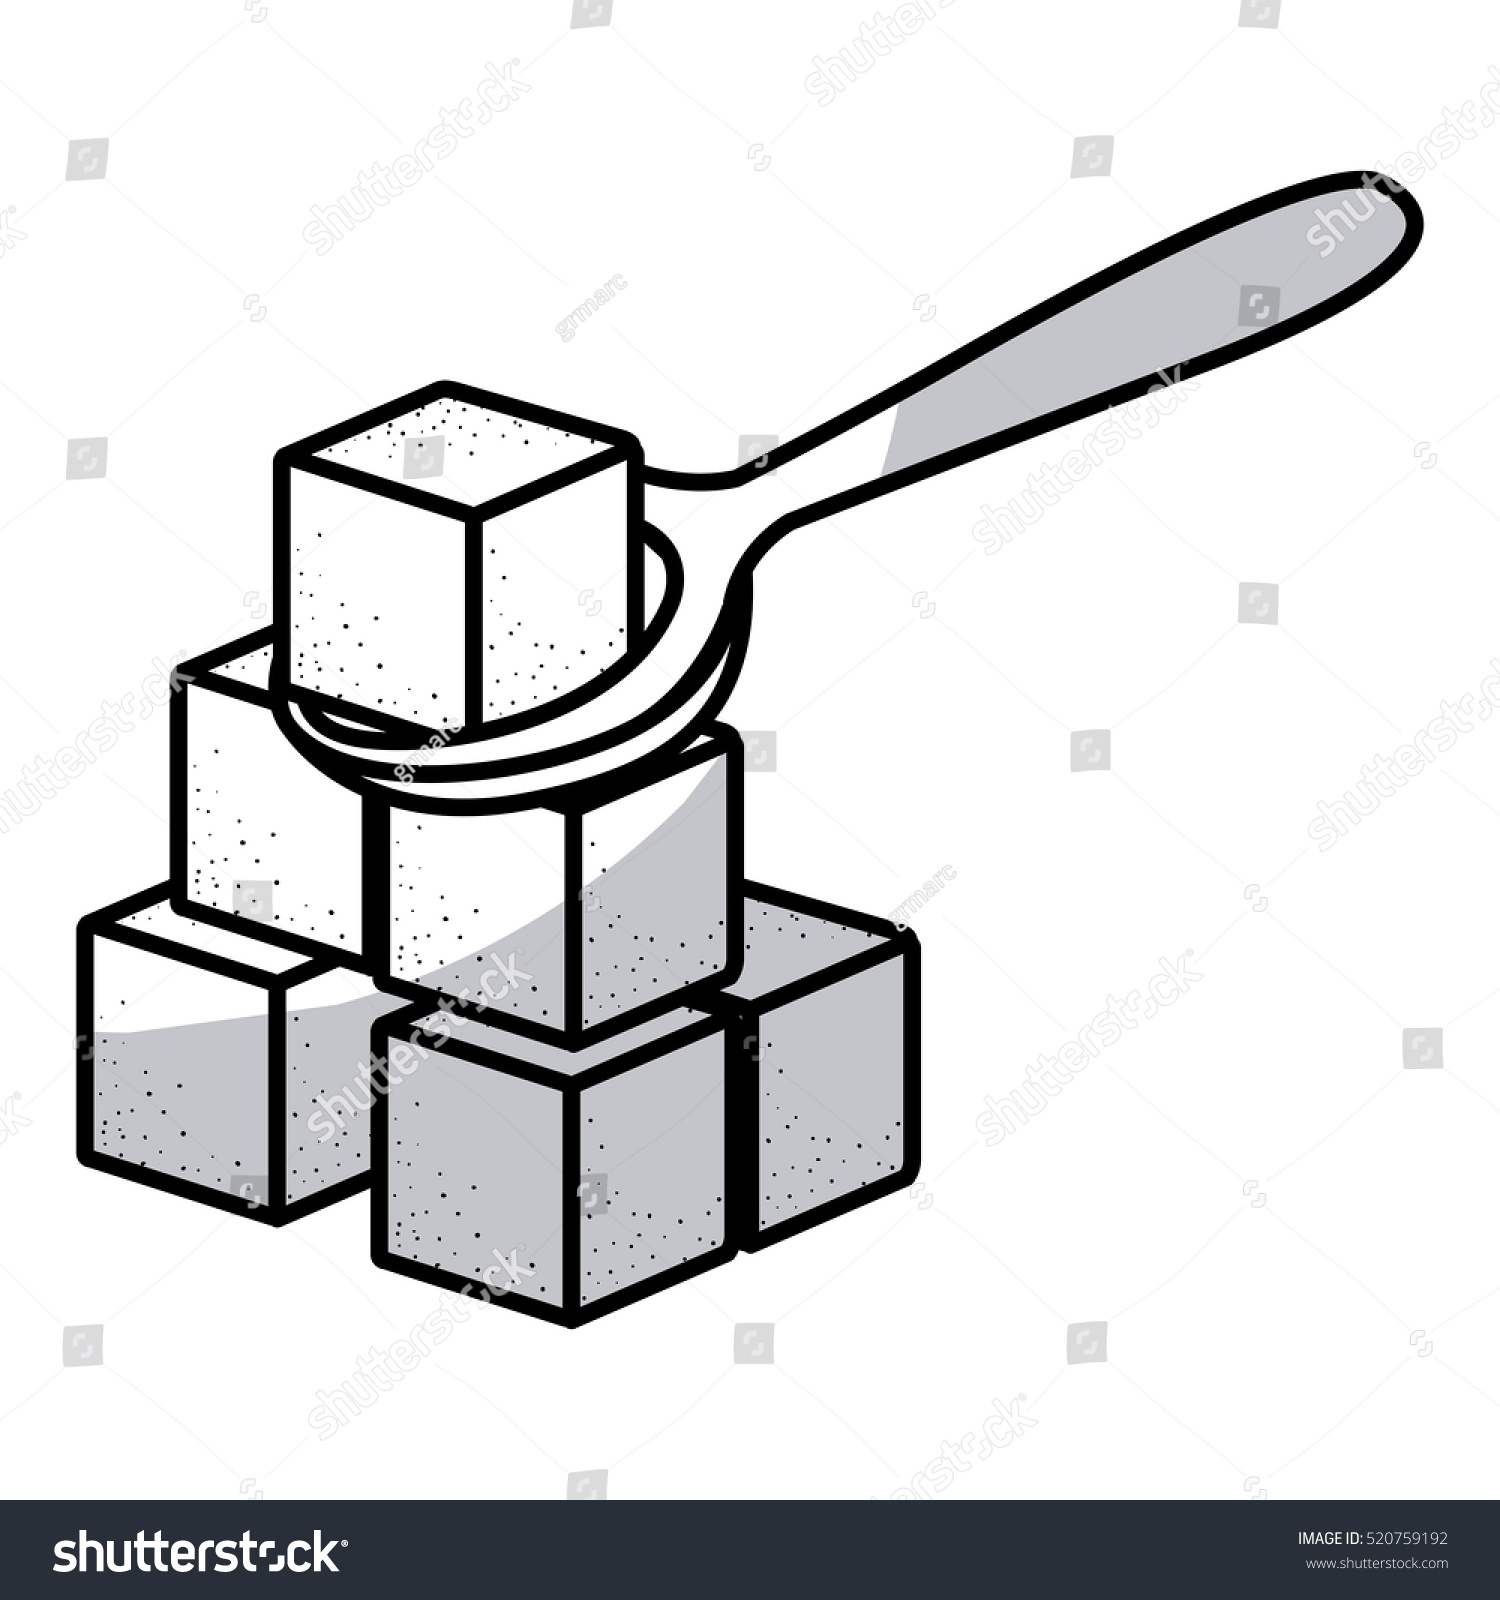 Isolated Sugar Cube Design Stock Vector (Royalty Free) 520759192.